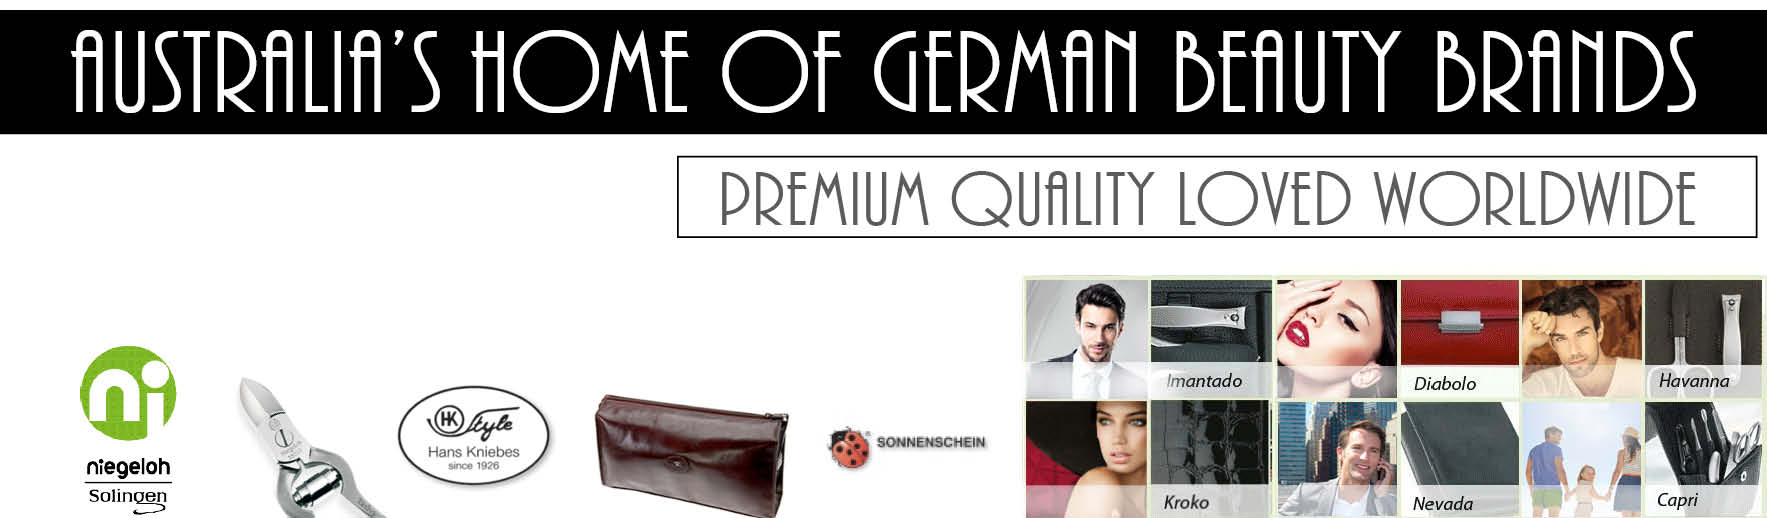 Australia's Home of German Beauty Brands